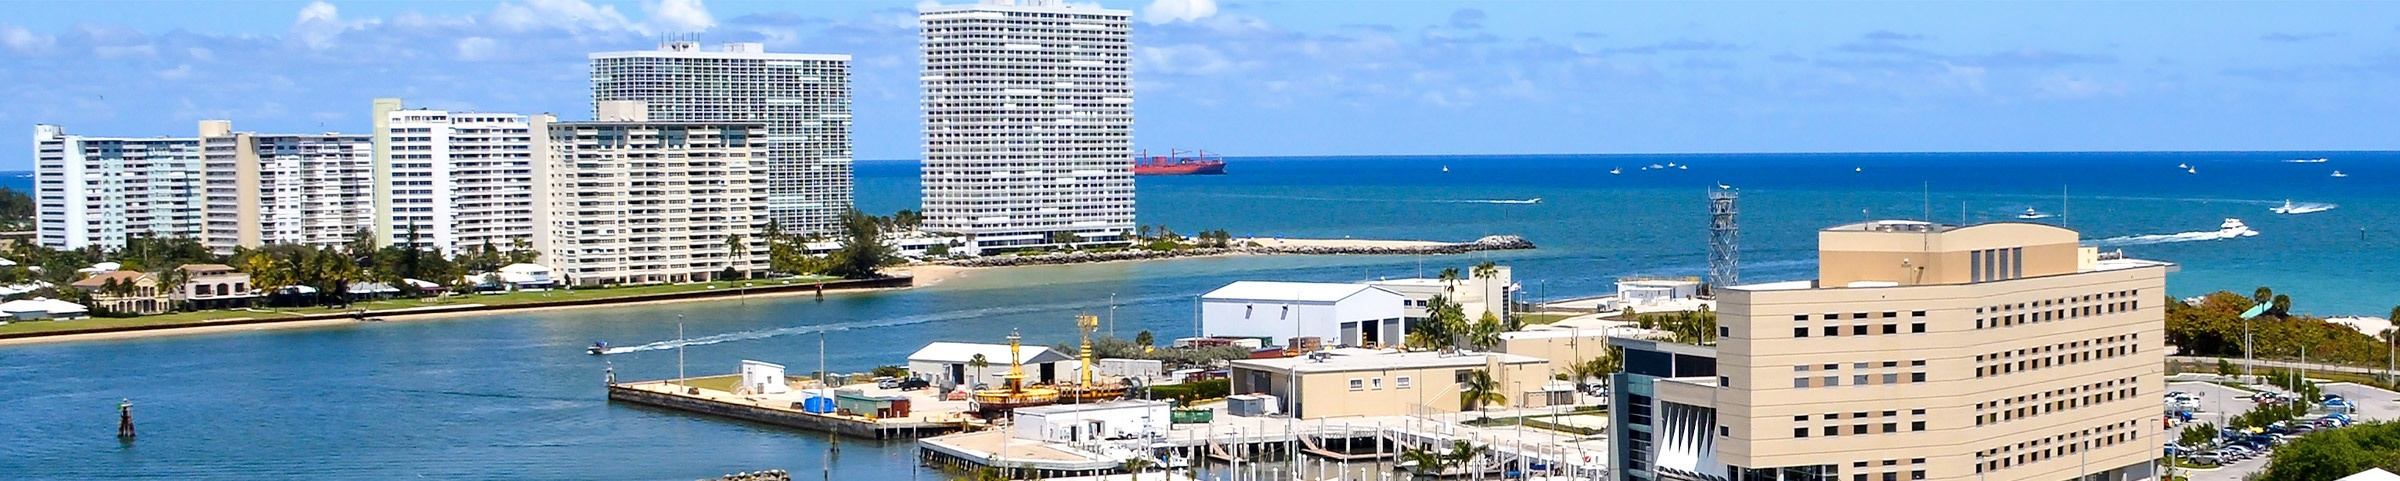 Photo of Fort Lauderdale